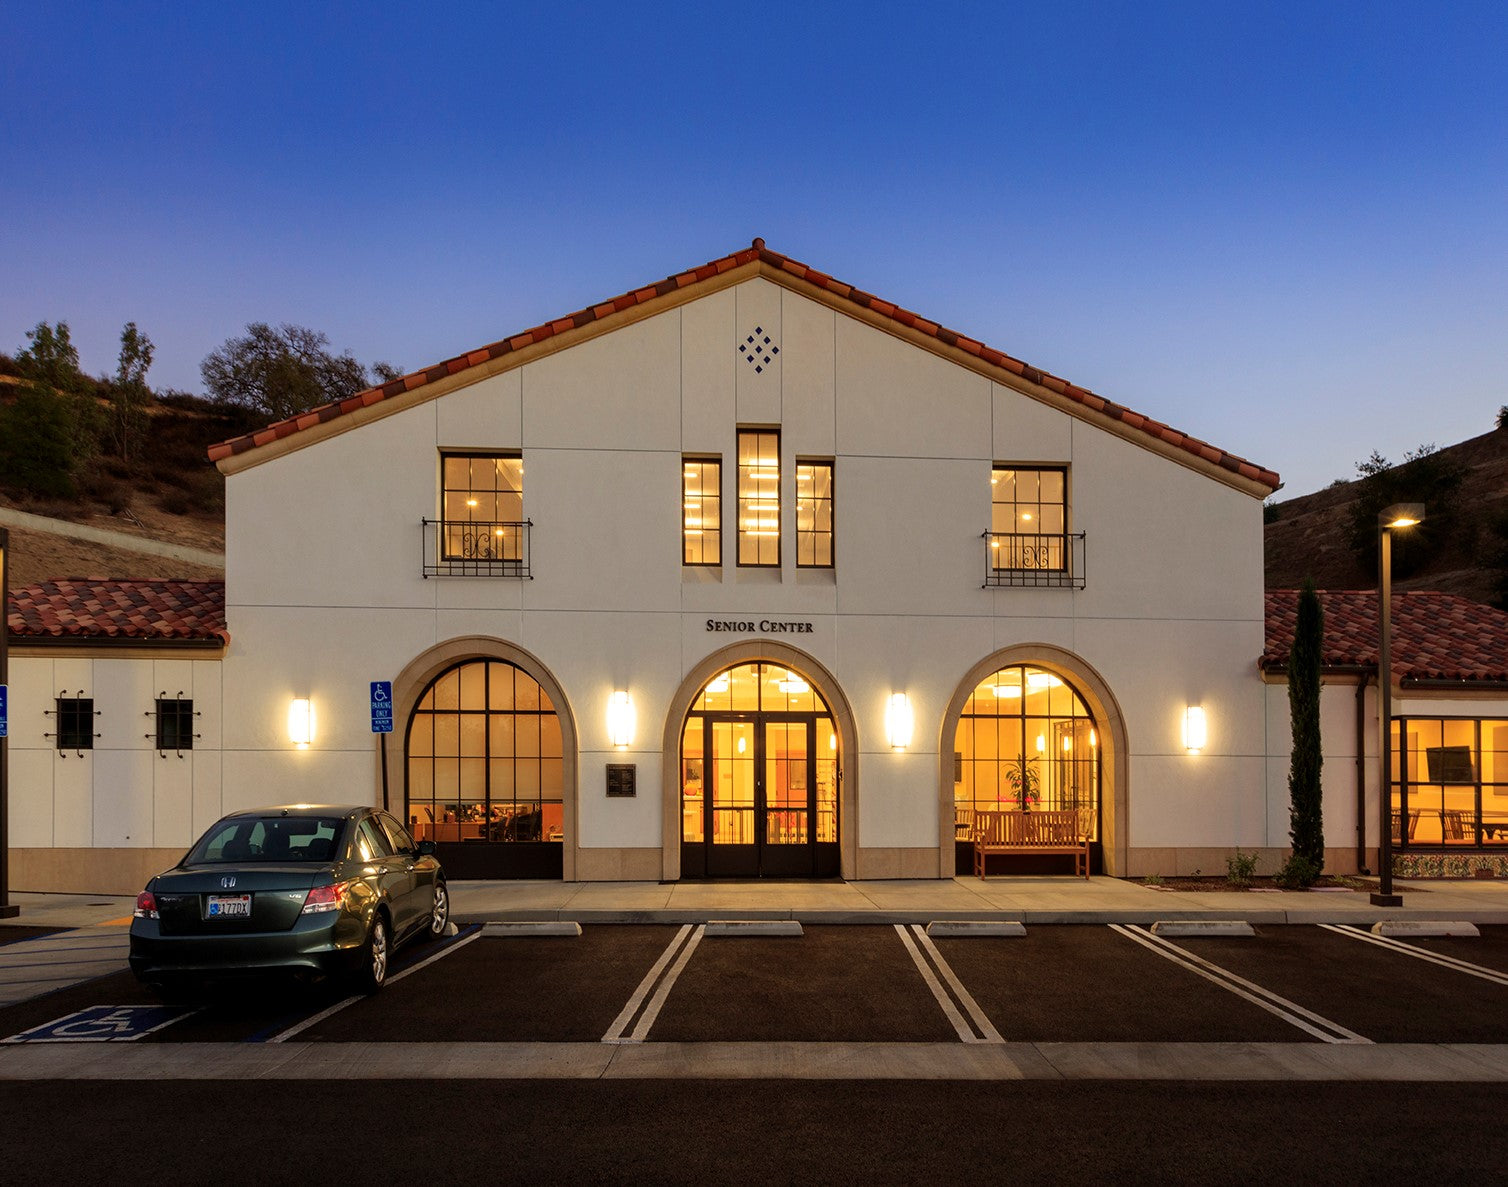 Calabasas Senior Center - Gonzalez Goodale Architects